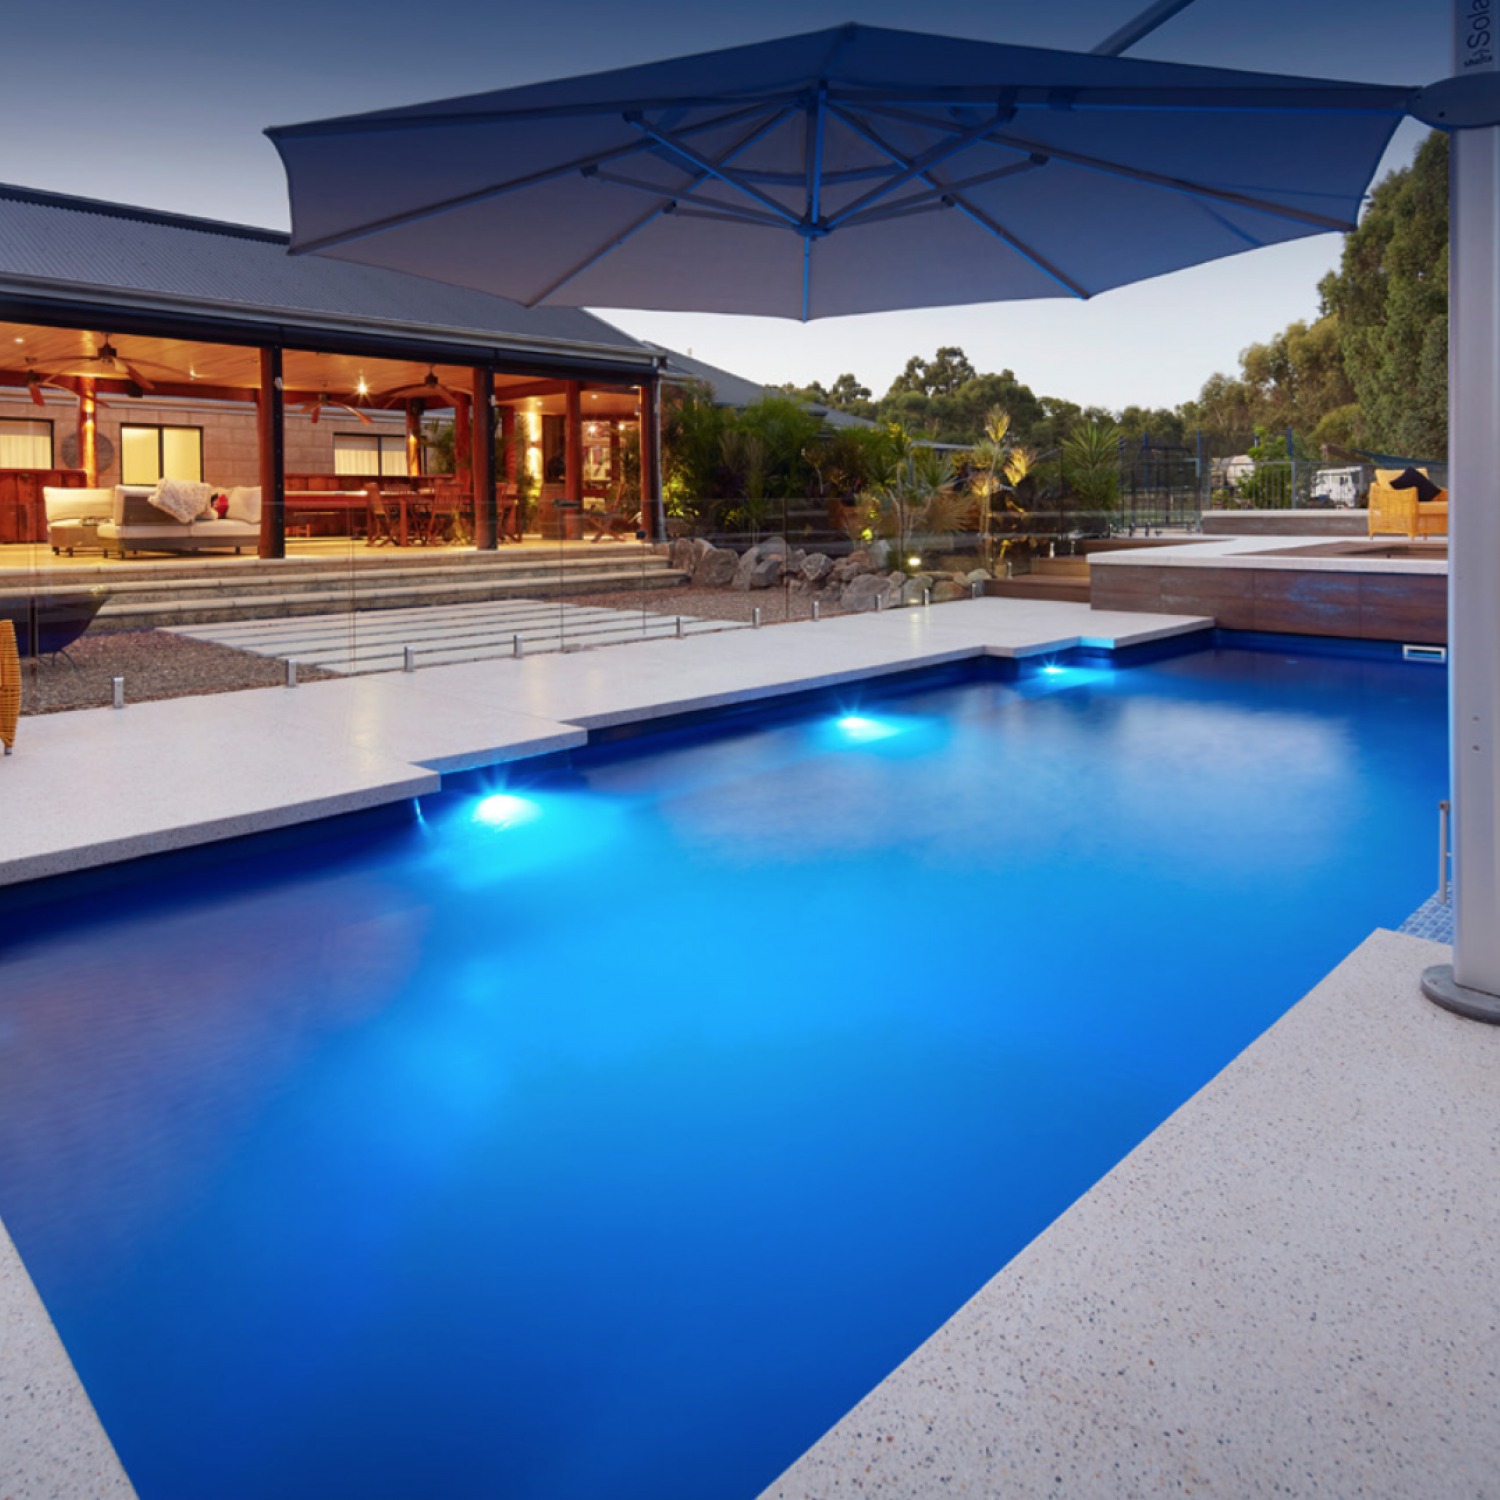 Fibreglass pool shells Newcastle, Central Coast and Hunter Valley